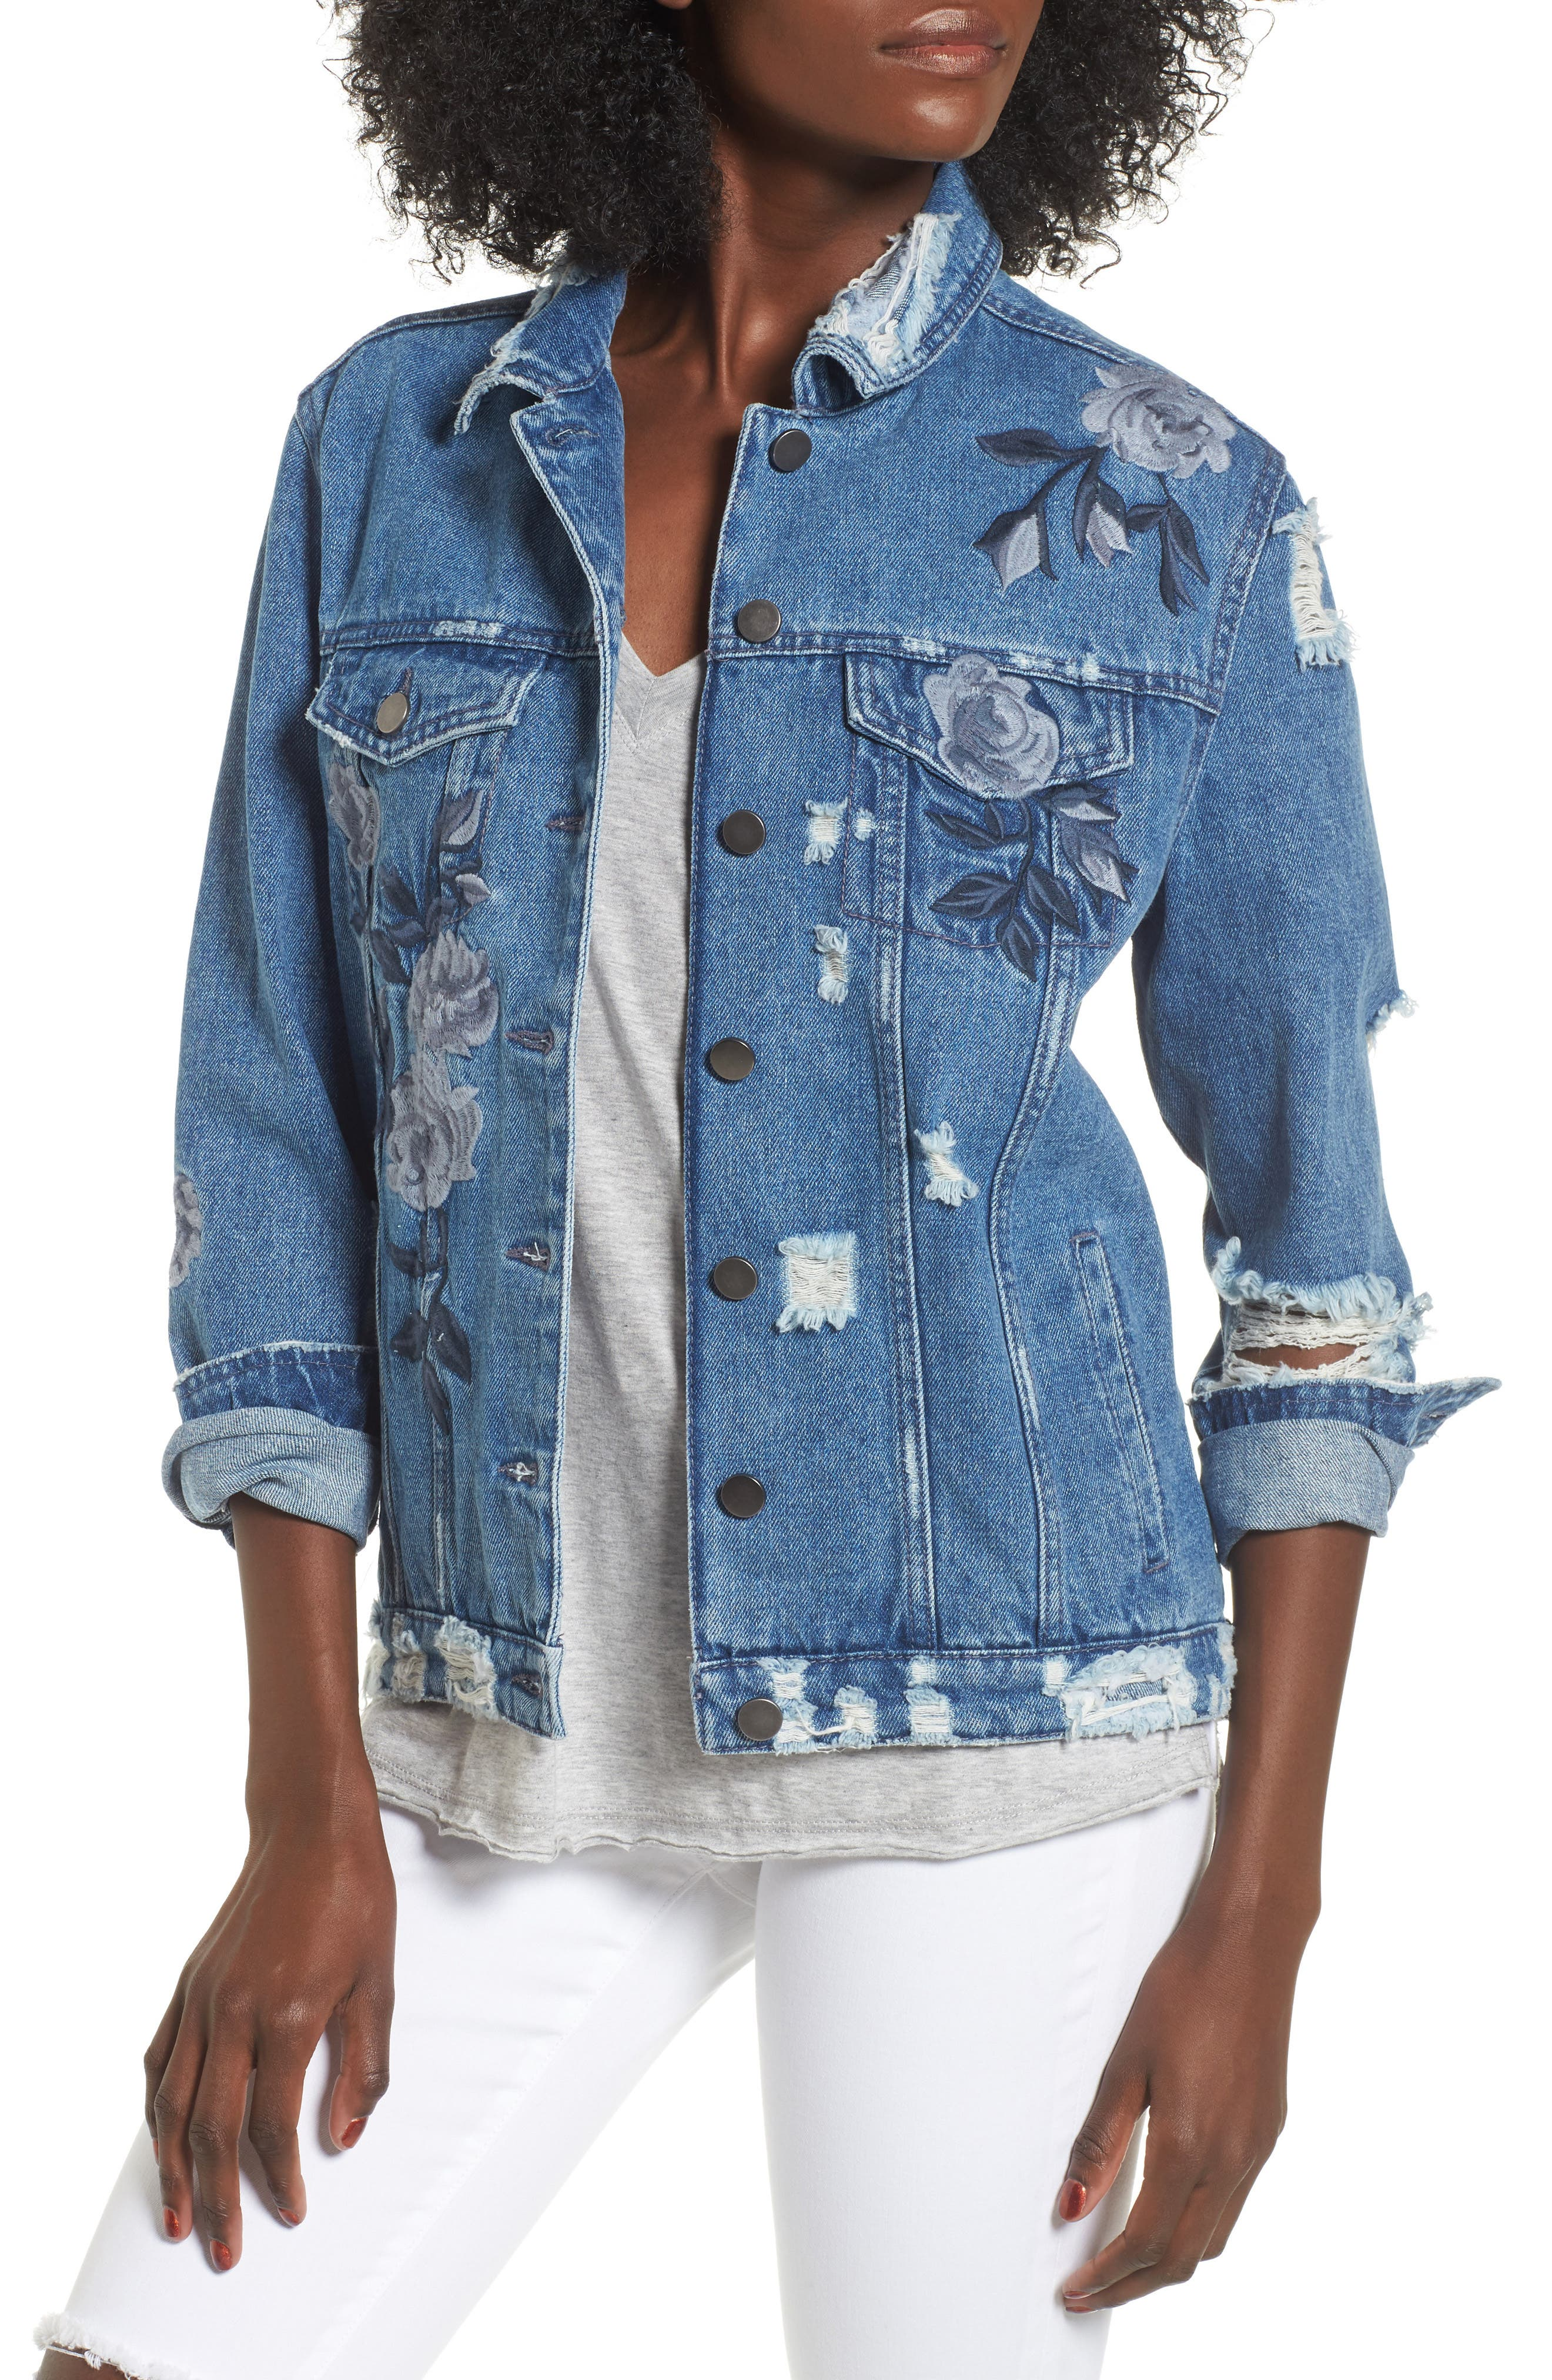 Alternate Image 1 Selected - Love, Fire Floral Embroidered Ripped Denim Jacket